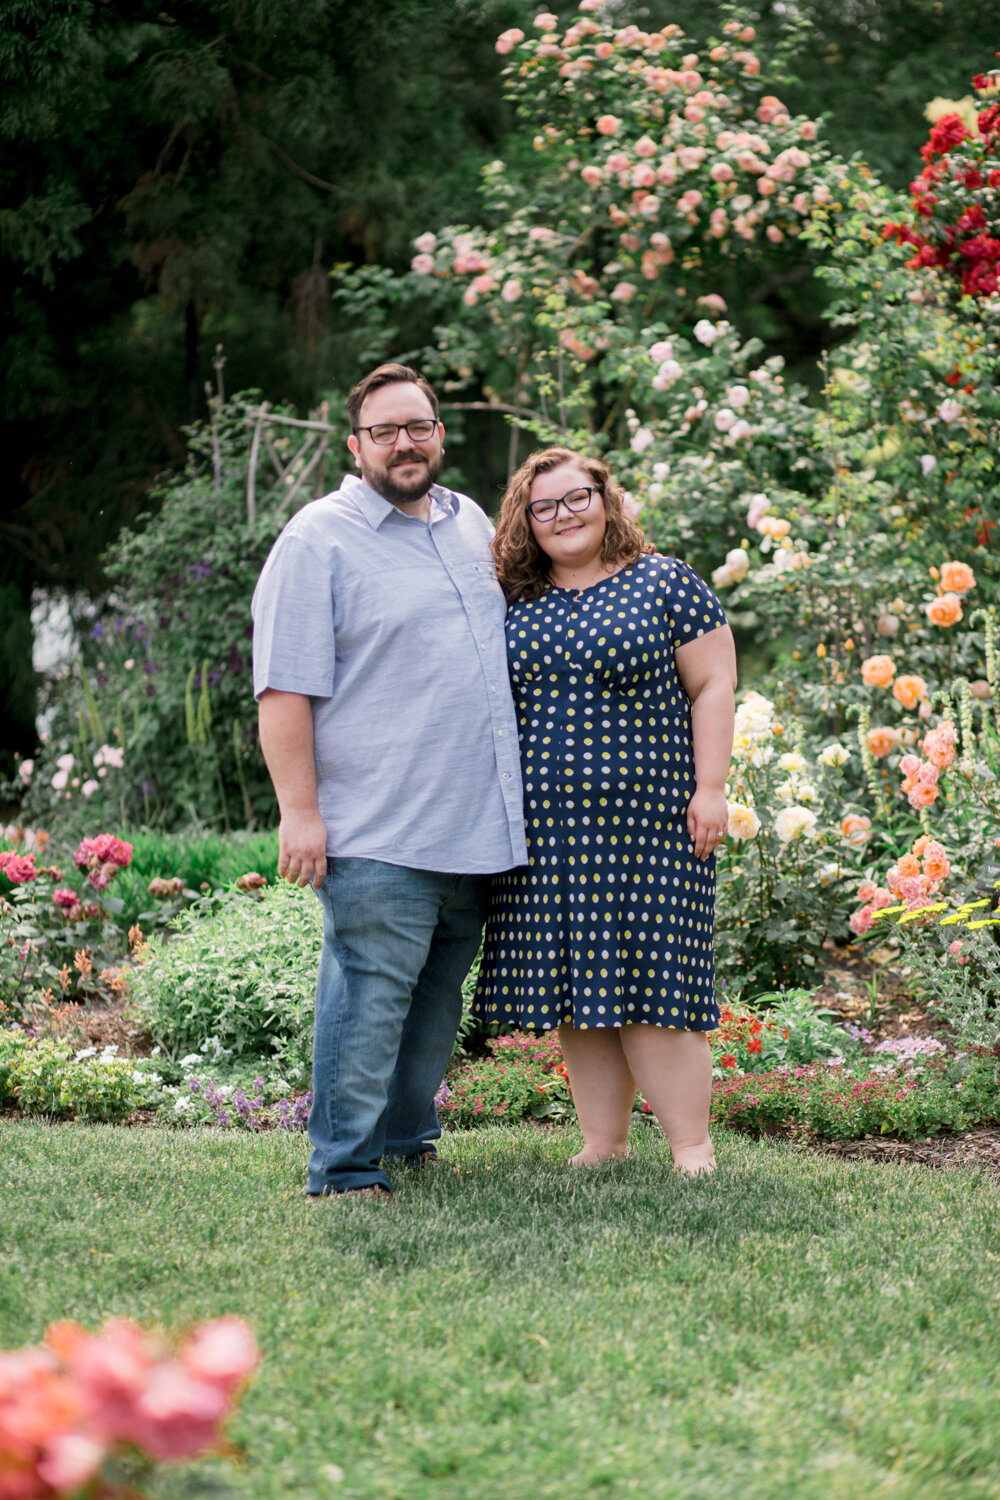 morris-arboretum-chestnut-hill-garden-engagement-session-philadelphia-wedding-photography-10.jpg